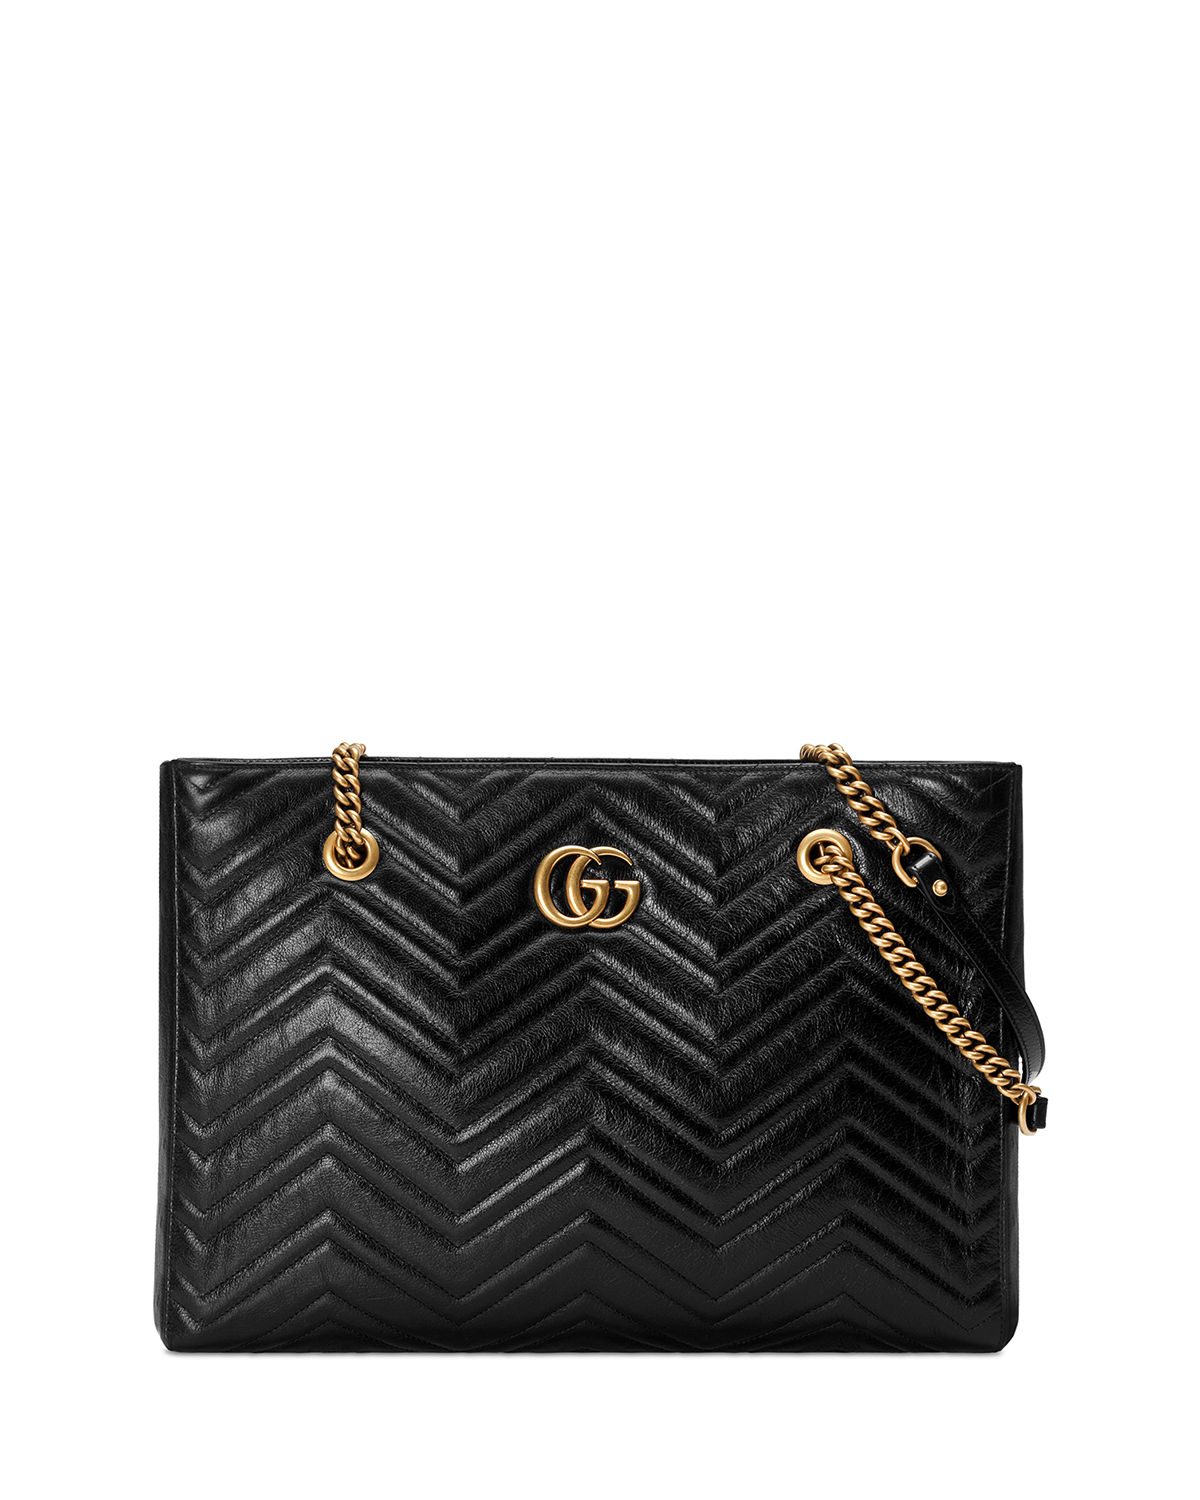 e757af548ec4bf Gucci GG Marmont Medium Quilted Leather Shoulder Tote Bag | Neiman ...